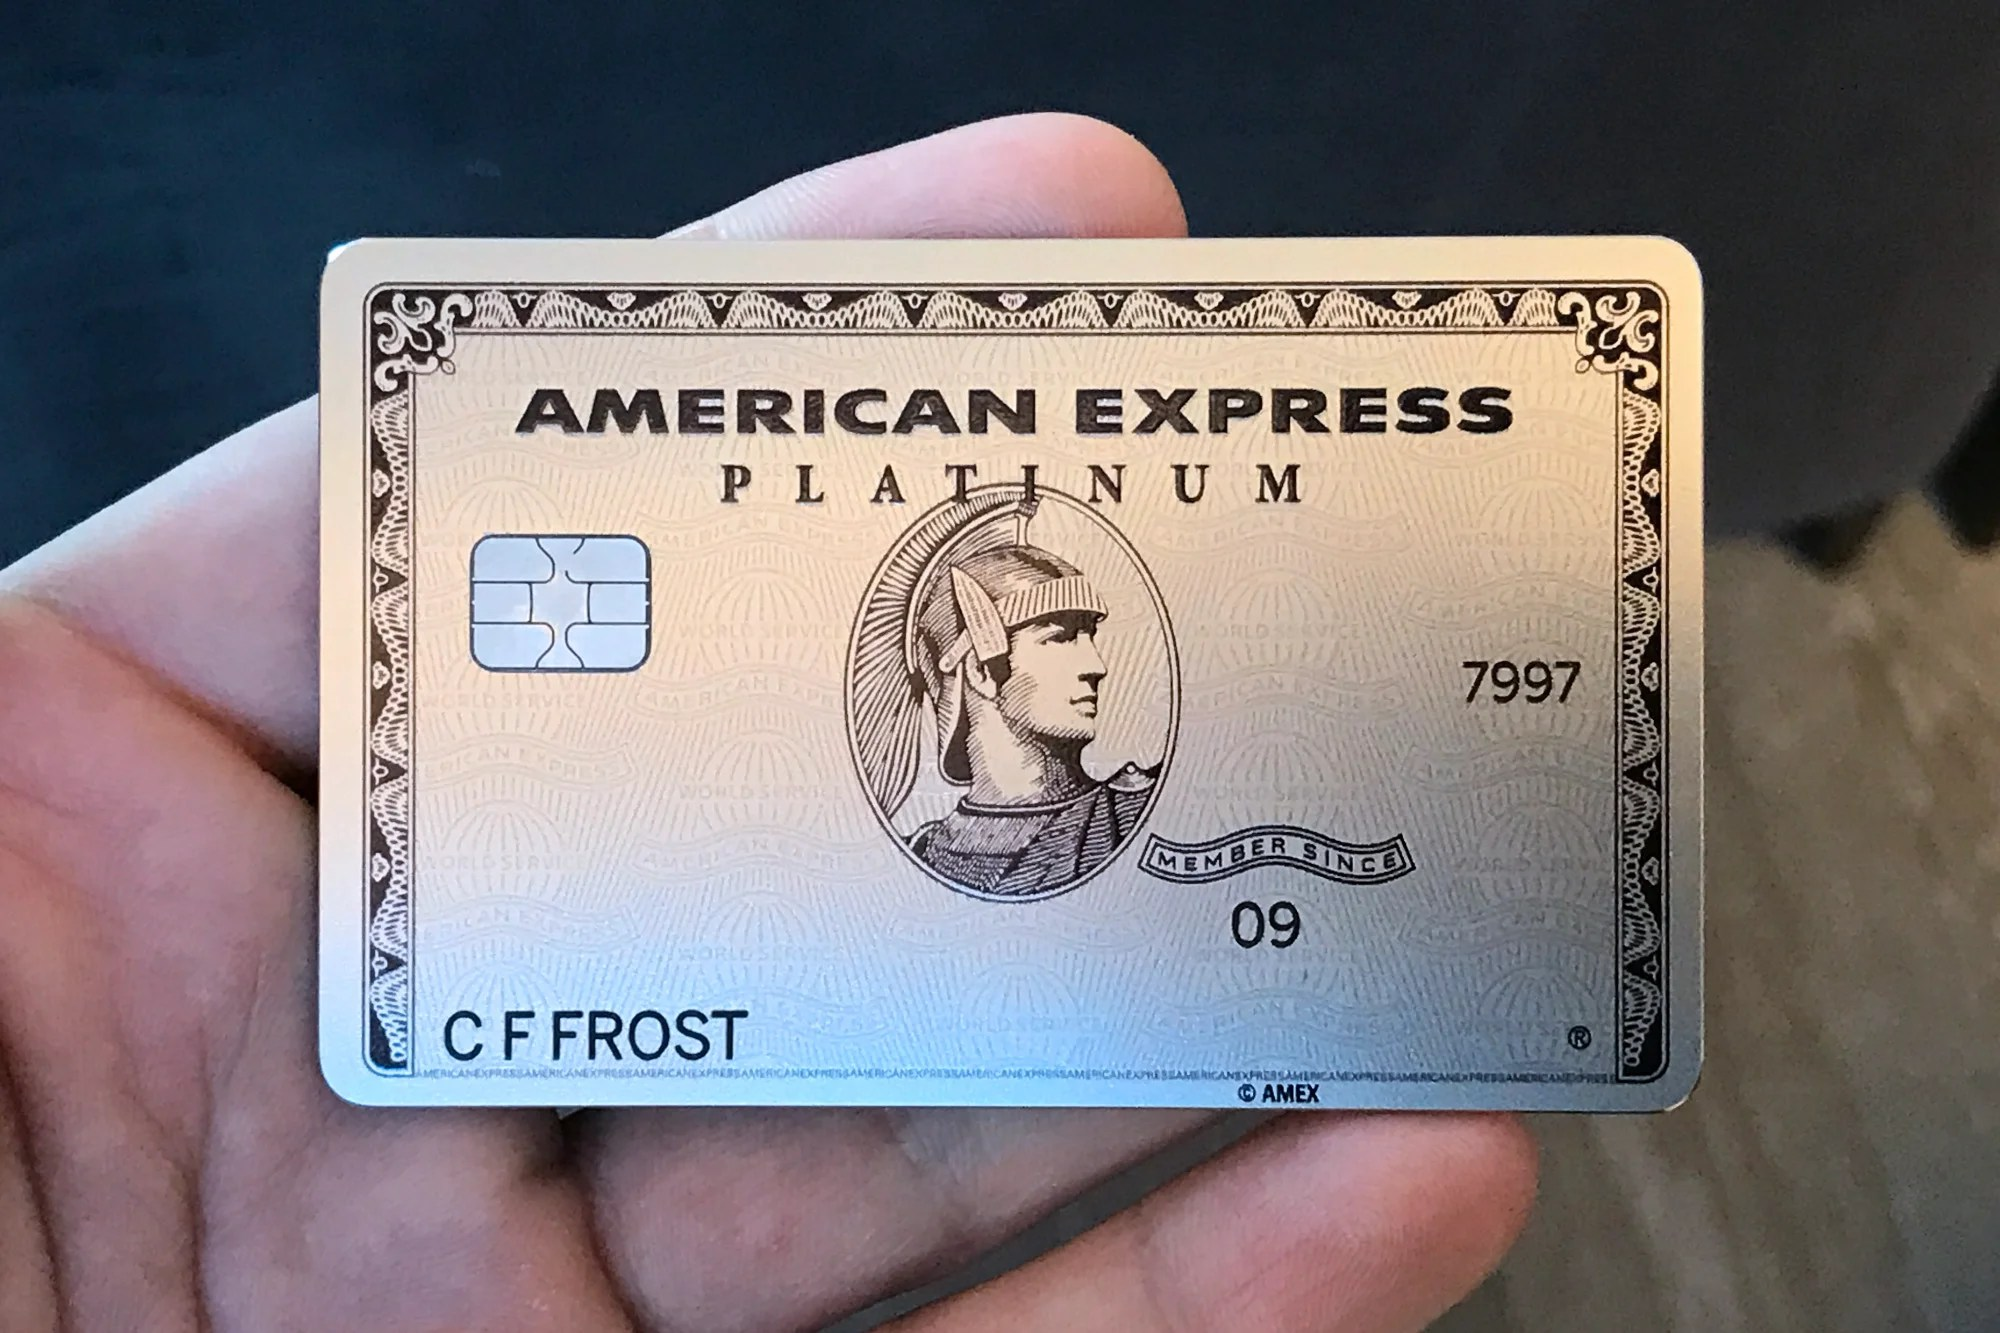 Maximizing Benefits With The Amex Platinum Card